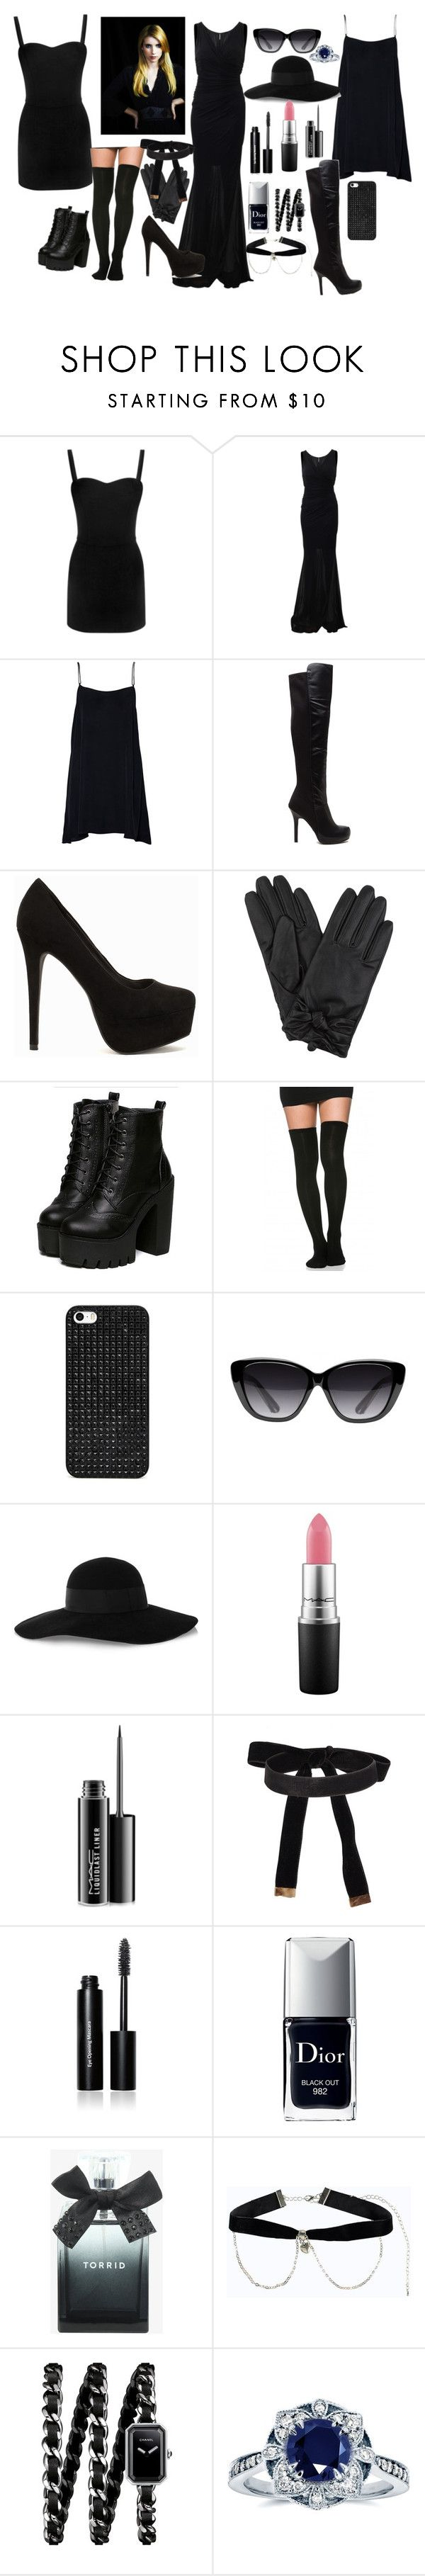 """""""Madison Montgomery Style."""" by aniludragneel ❤ liked on Polyvore featuring Alexander McQueen, Blumarine, Nly Shoes, BaubleBar, Elizabeth and James, Eugenia Kim, MAC Cosmetics, Bobbi Brown Cosmetics, Christian Dior and Torrid"""